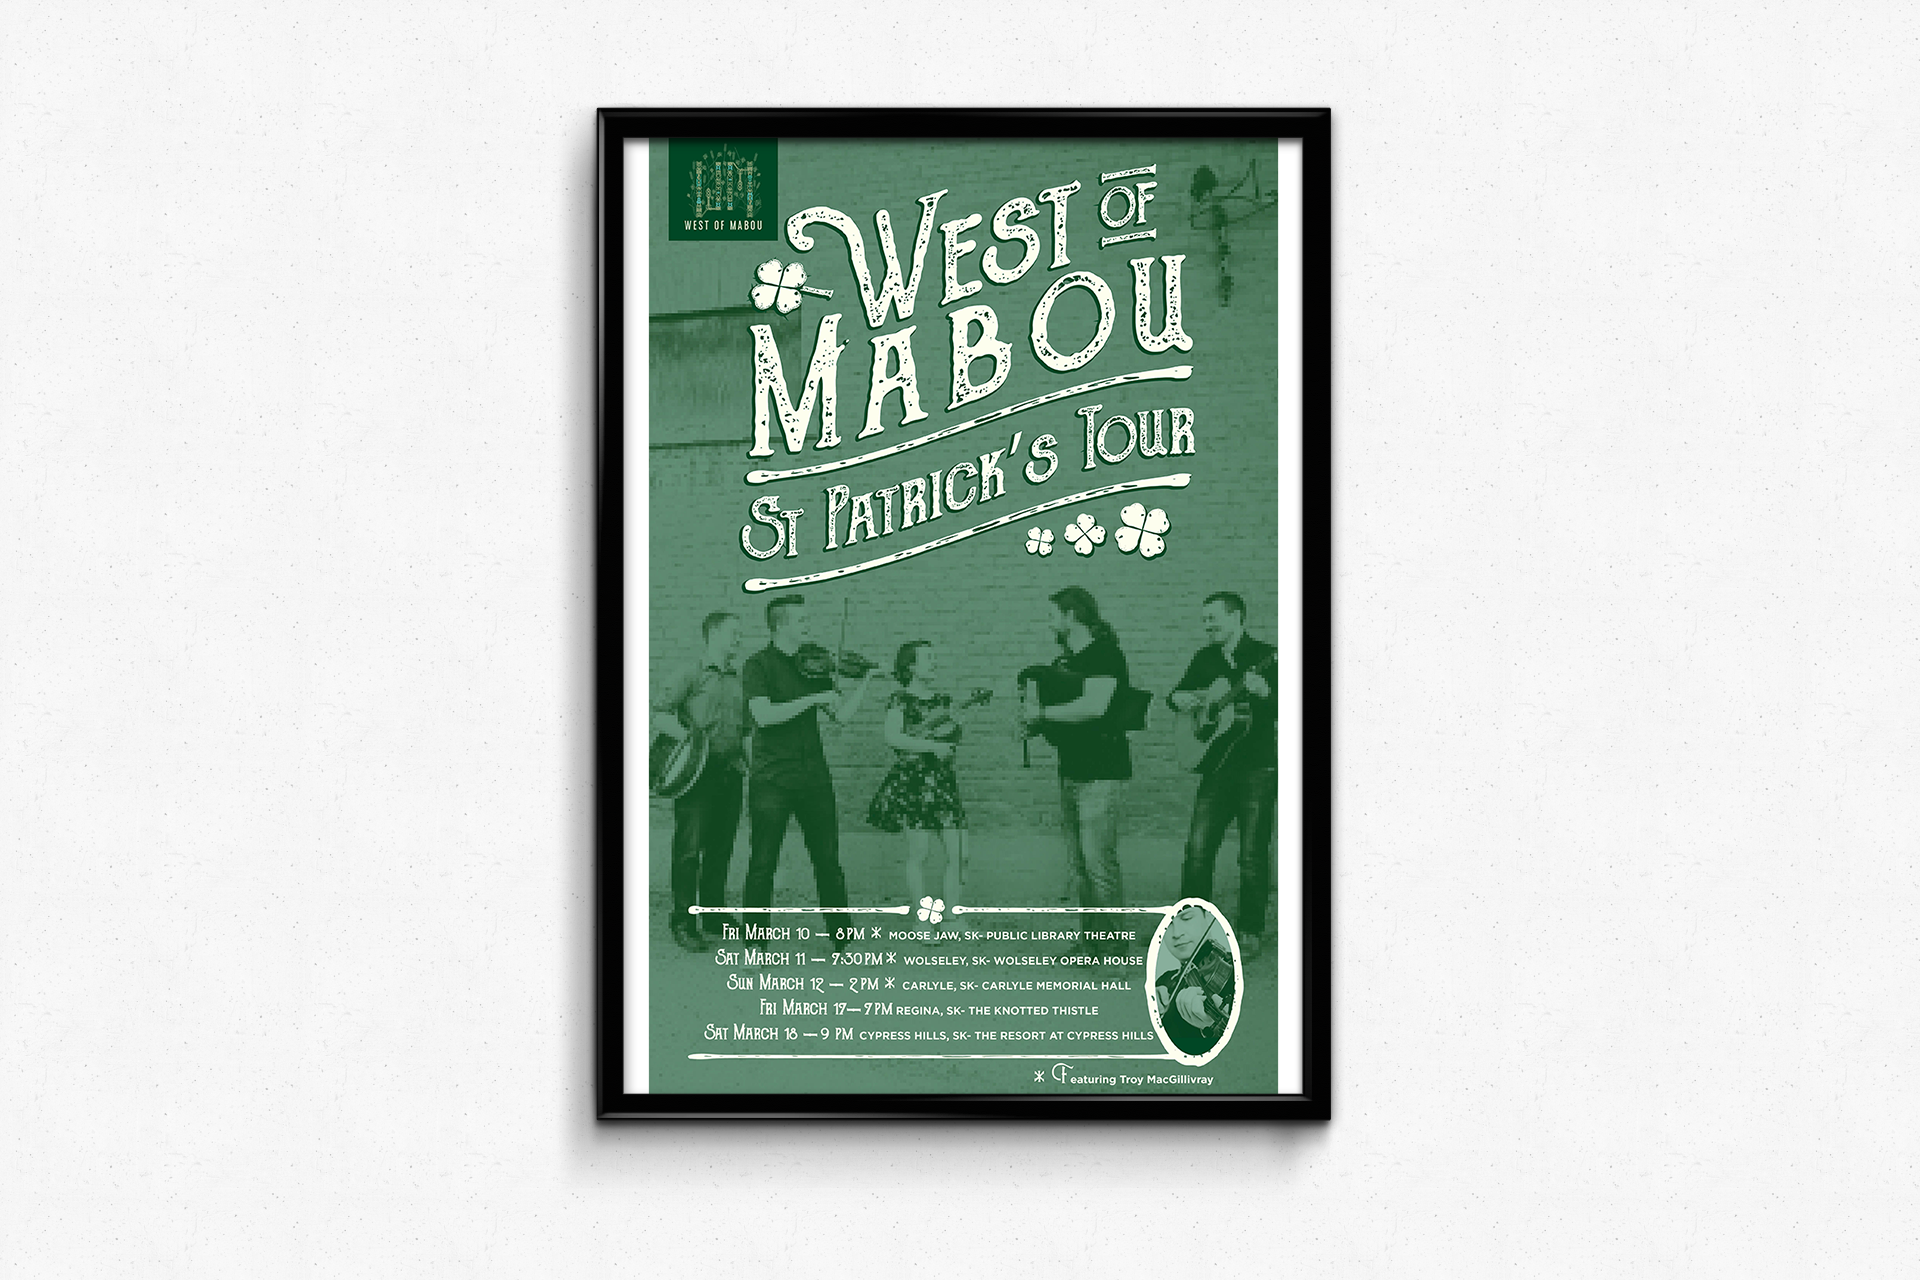 West Of Mabou — St. Patrick's Day Tour